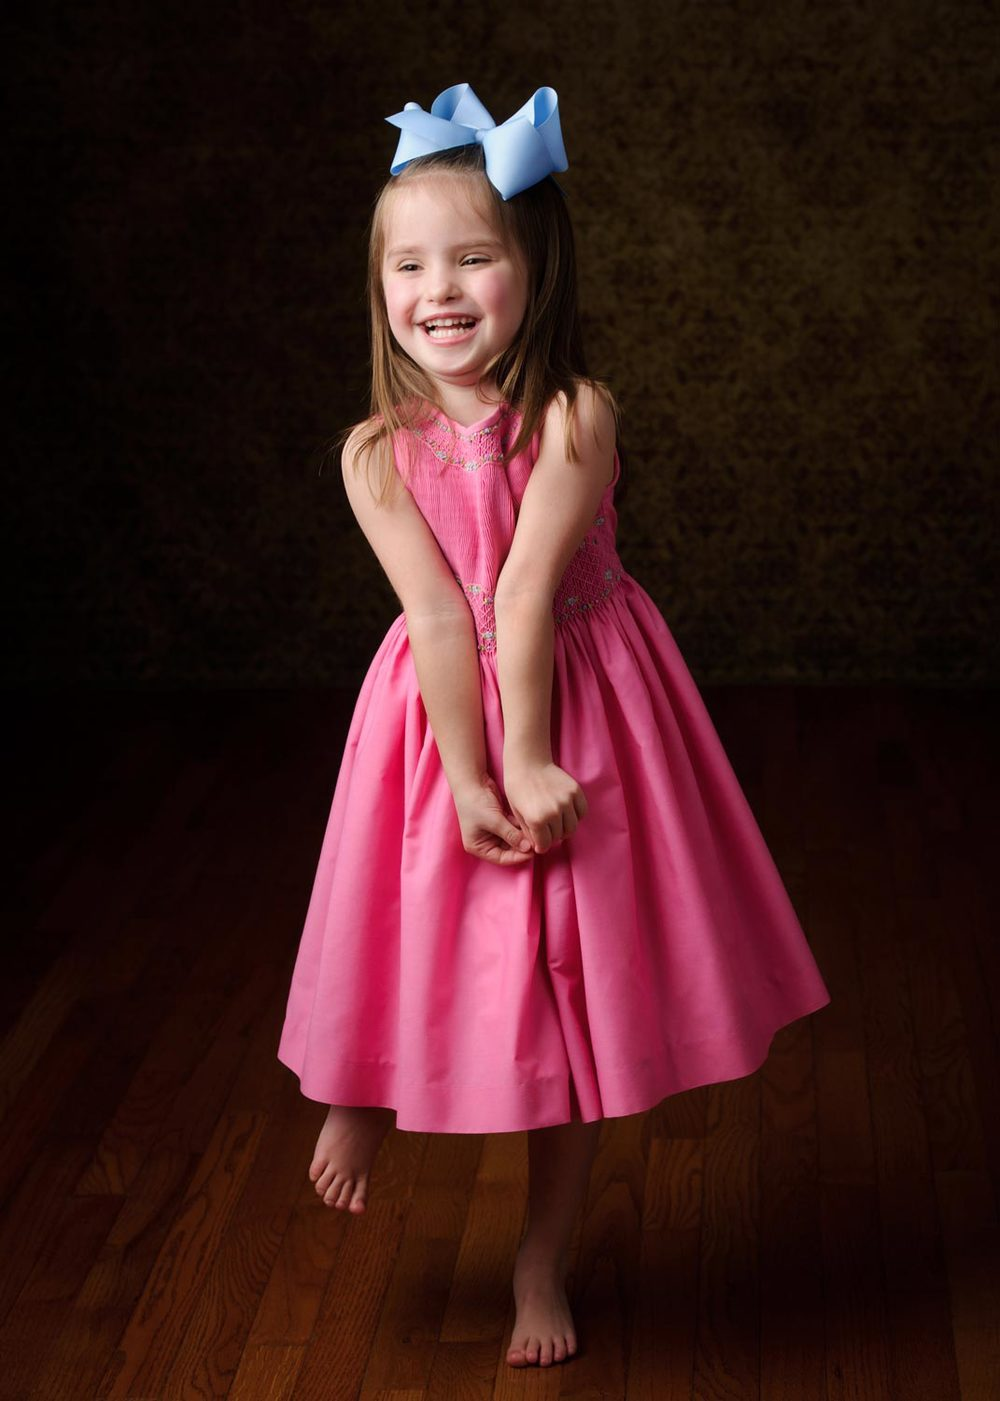 childrens_photographer_lexington_ky_studio_walz01.jpg